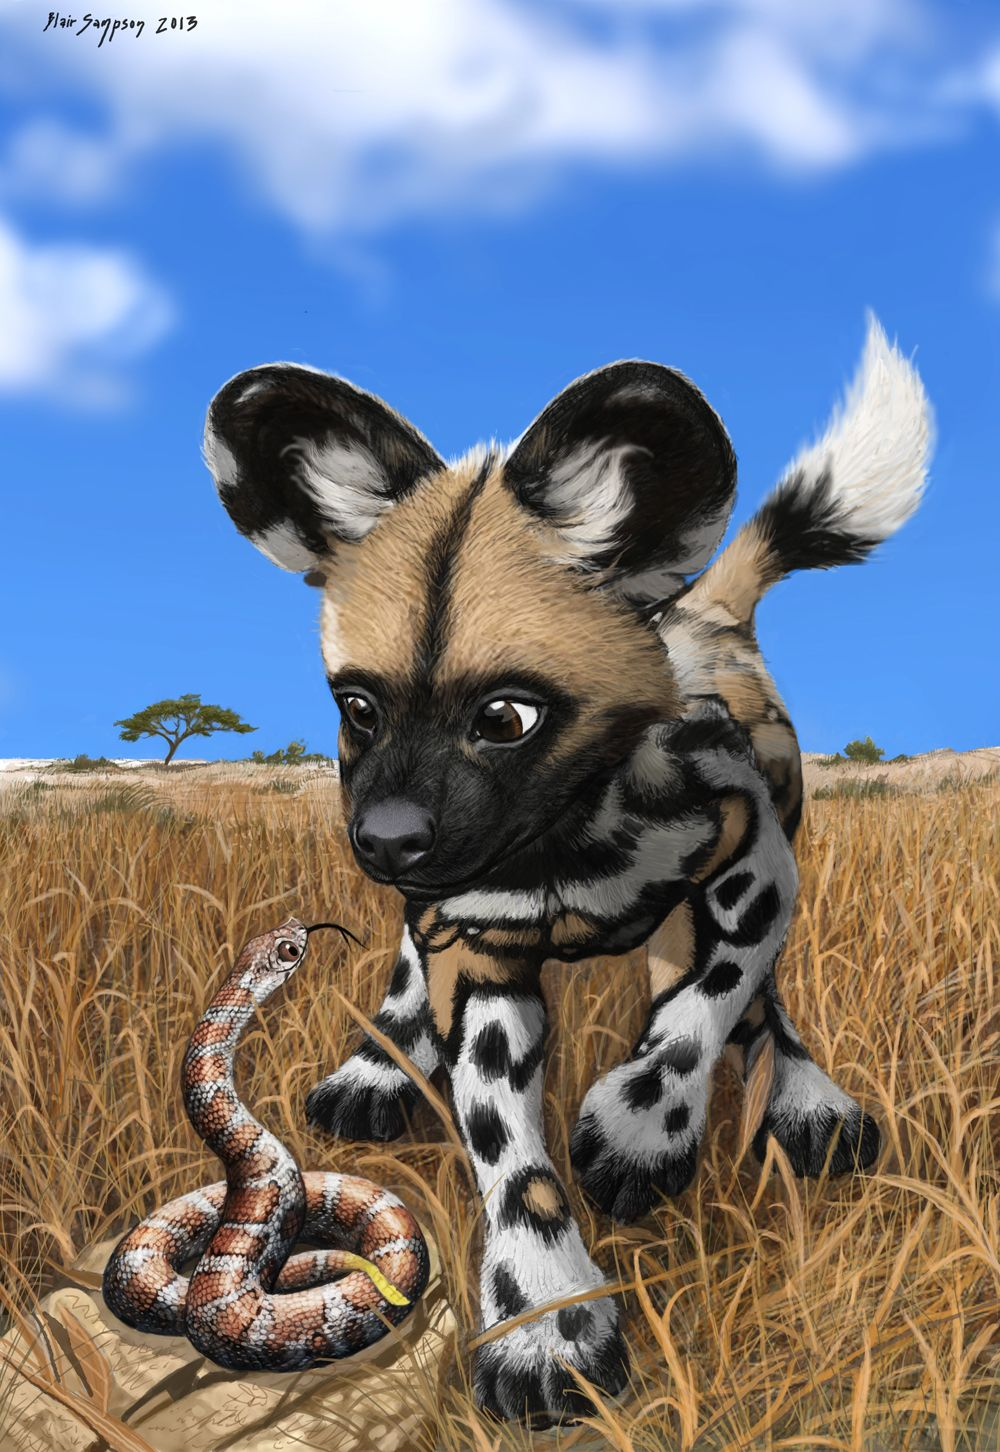 African wild dog pup and baby snake compare spots by psithyrus deviantart com on deviantart